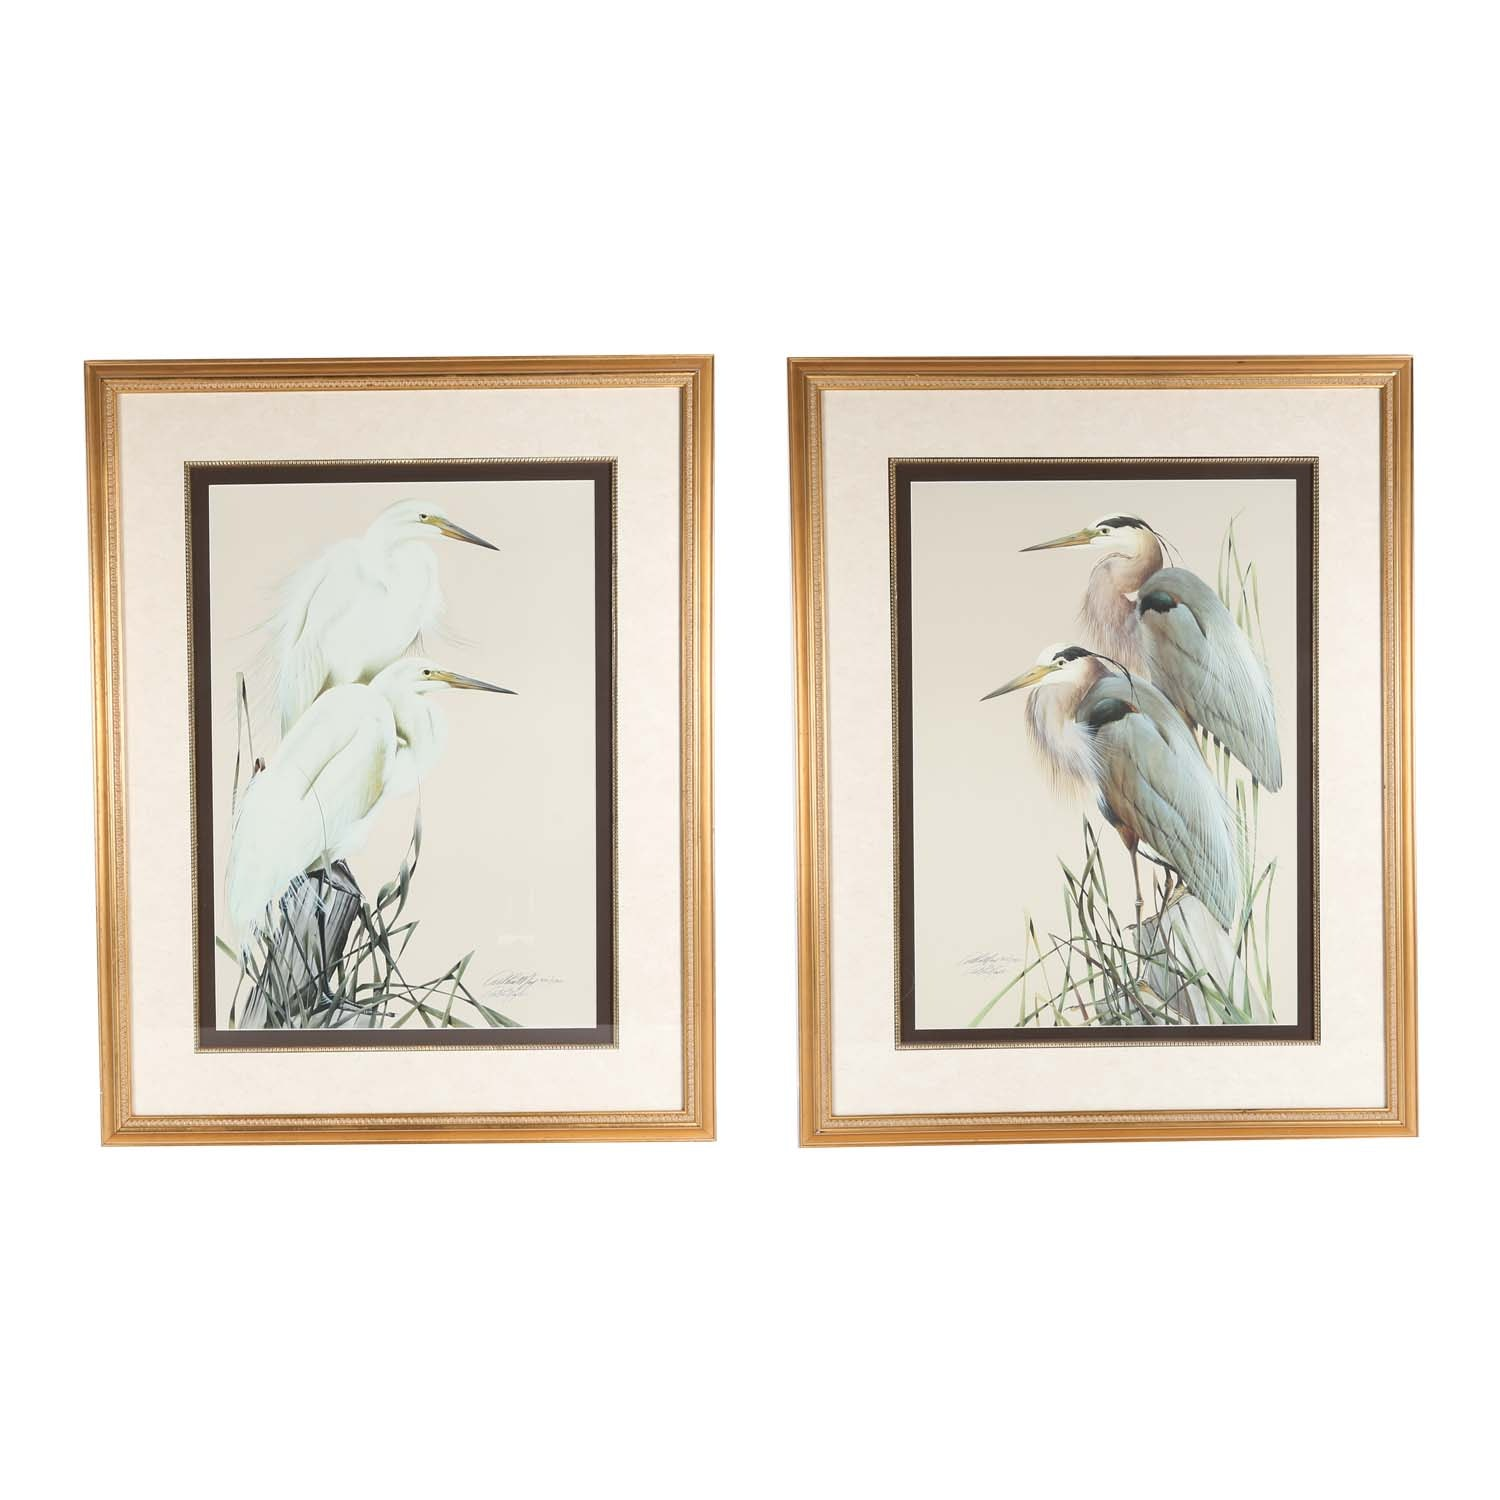 Pair of Signed Limited Edition Art LaMay Heron Offset Lithographs